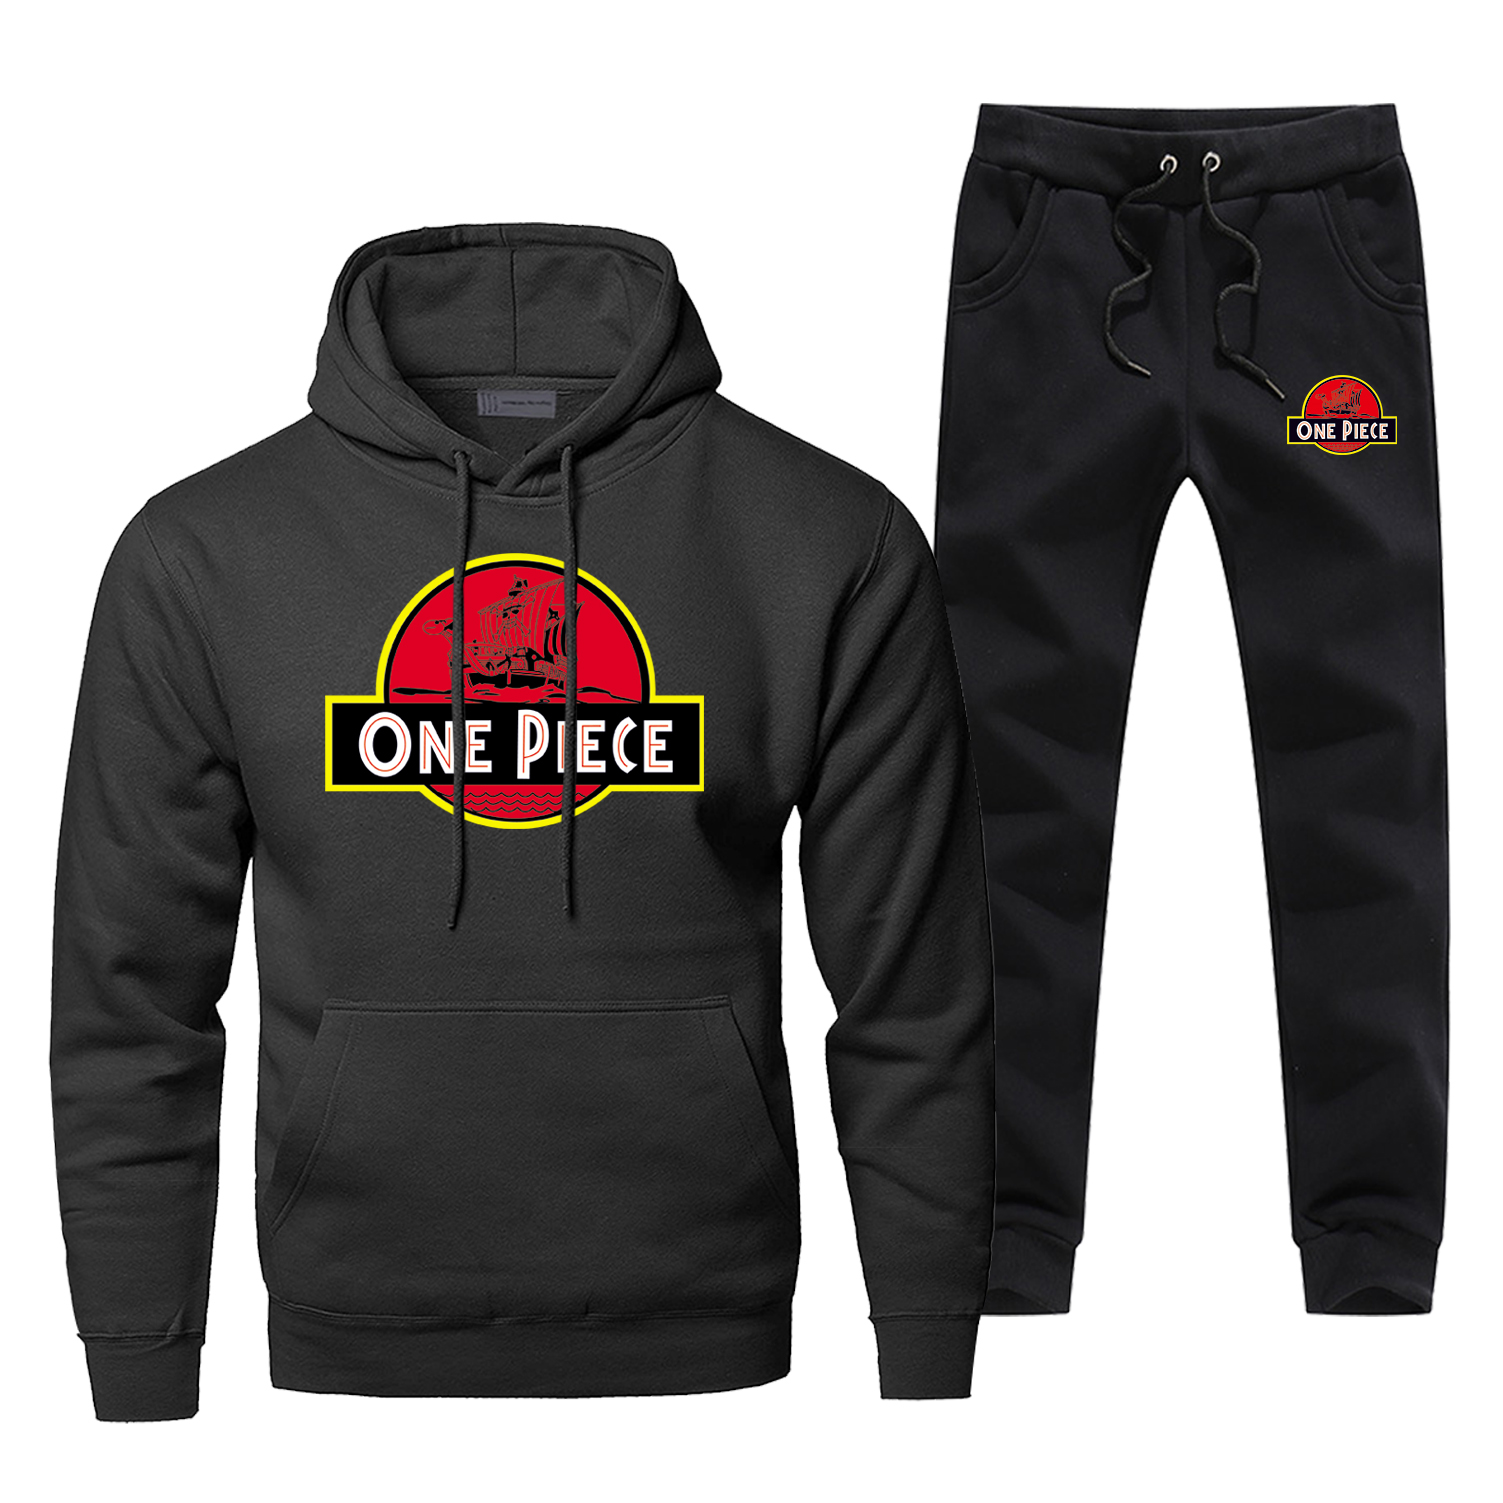 Classic Japan Anime Hoodie Funny Design One Piece Luffy Casual Hoodies Mens Hoodie+pants 2Pcs Sets Fleece Sweatshirt Tracksuit